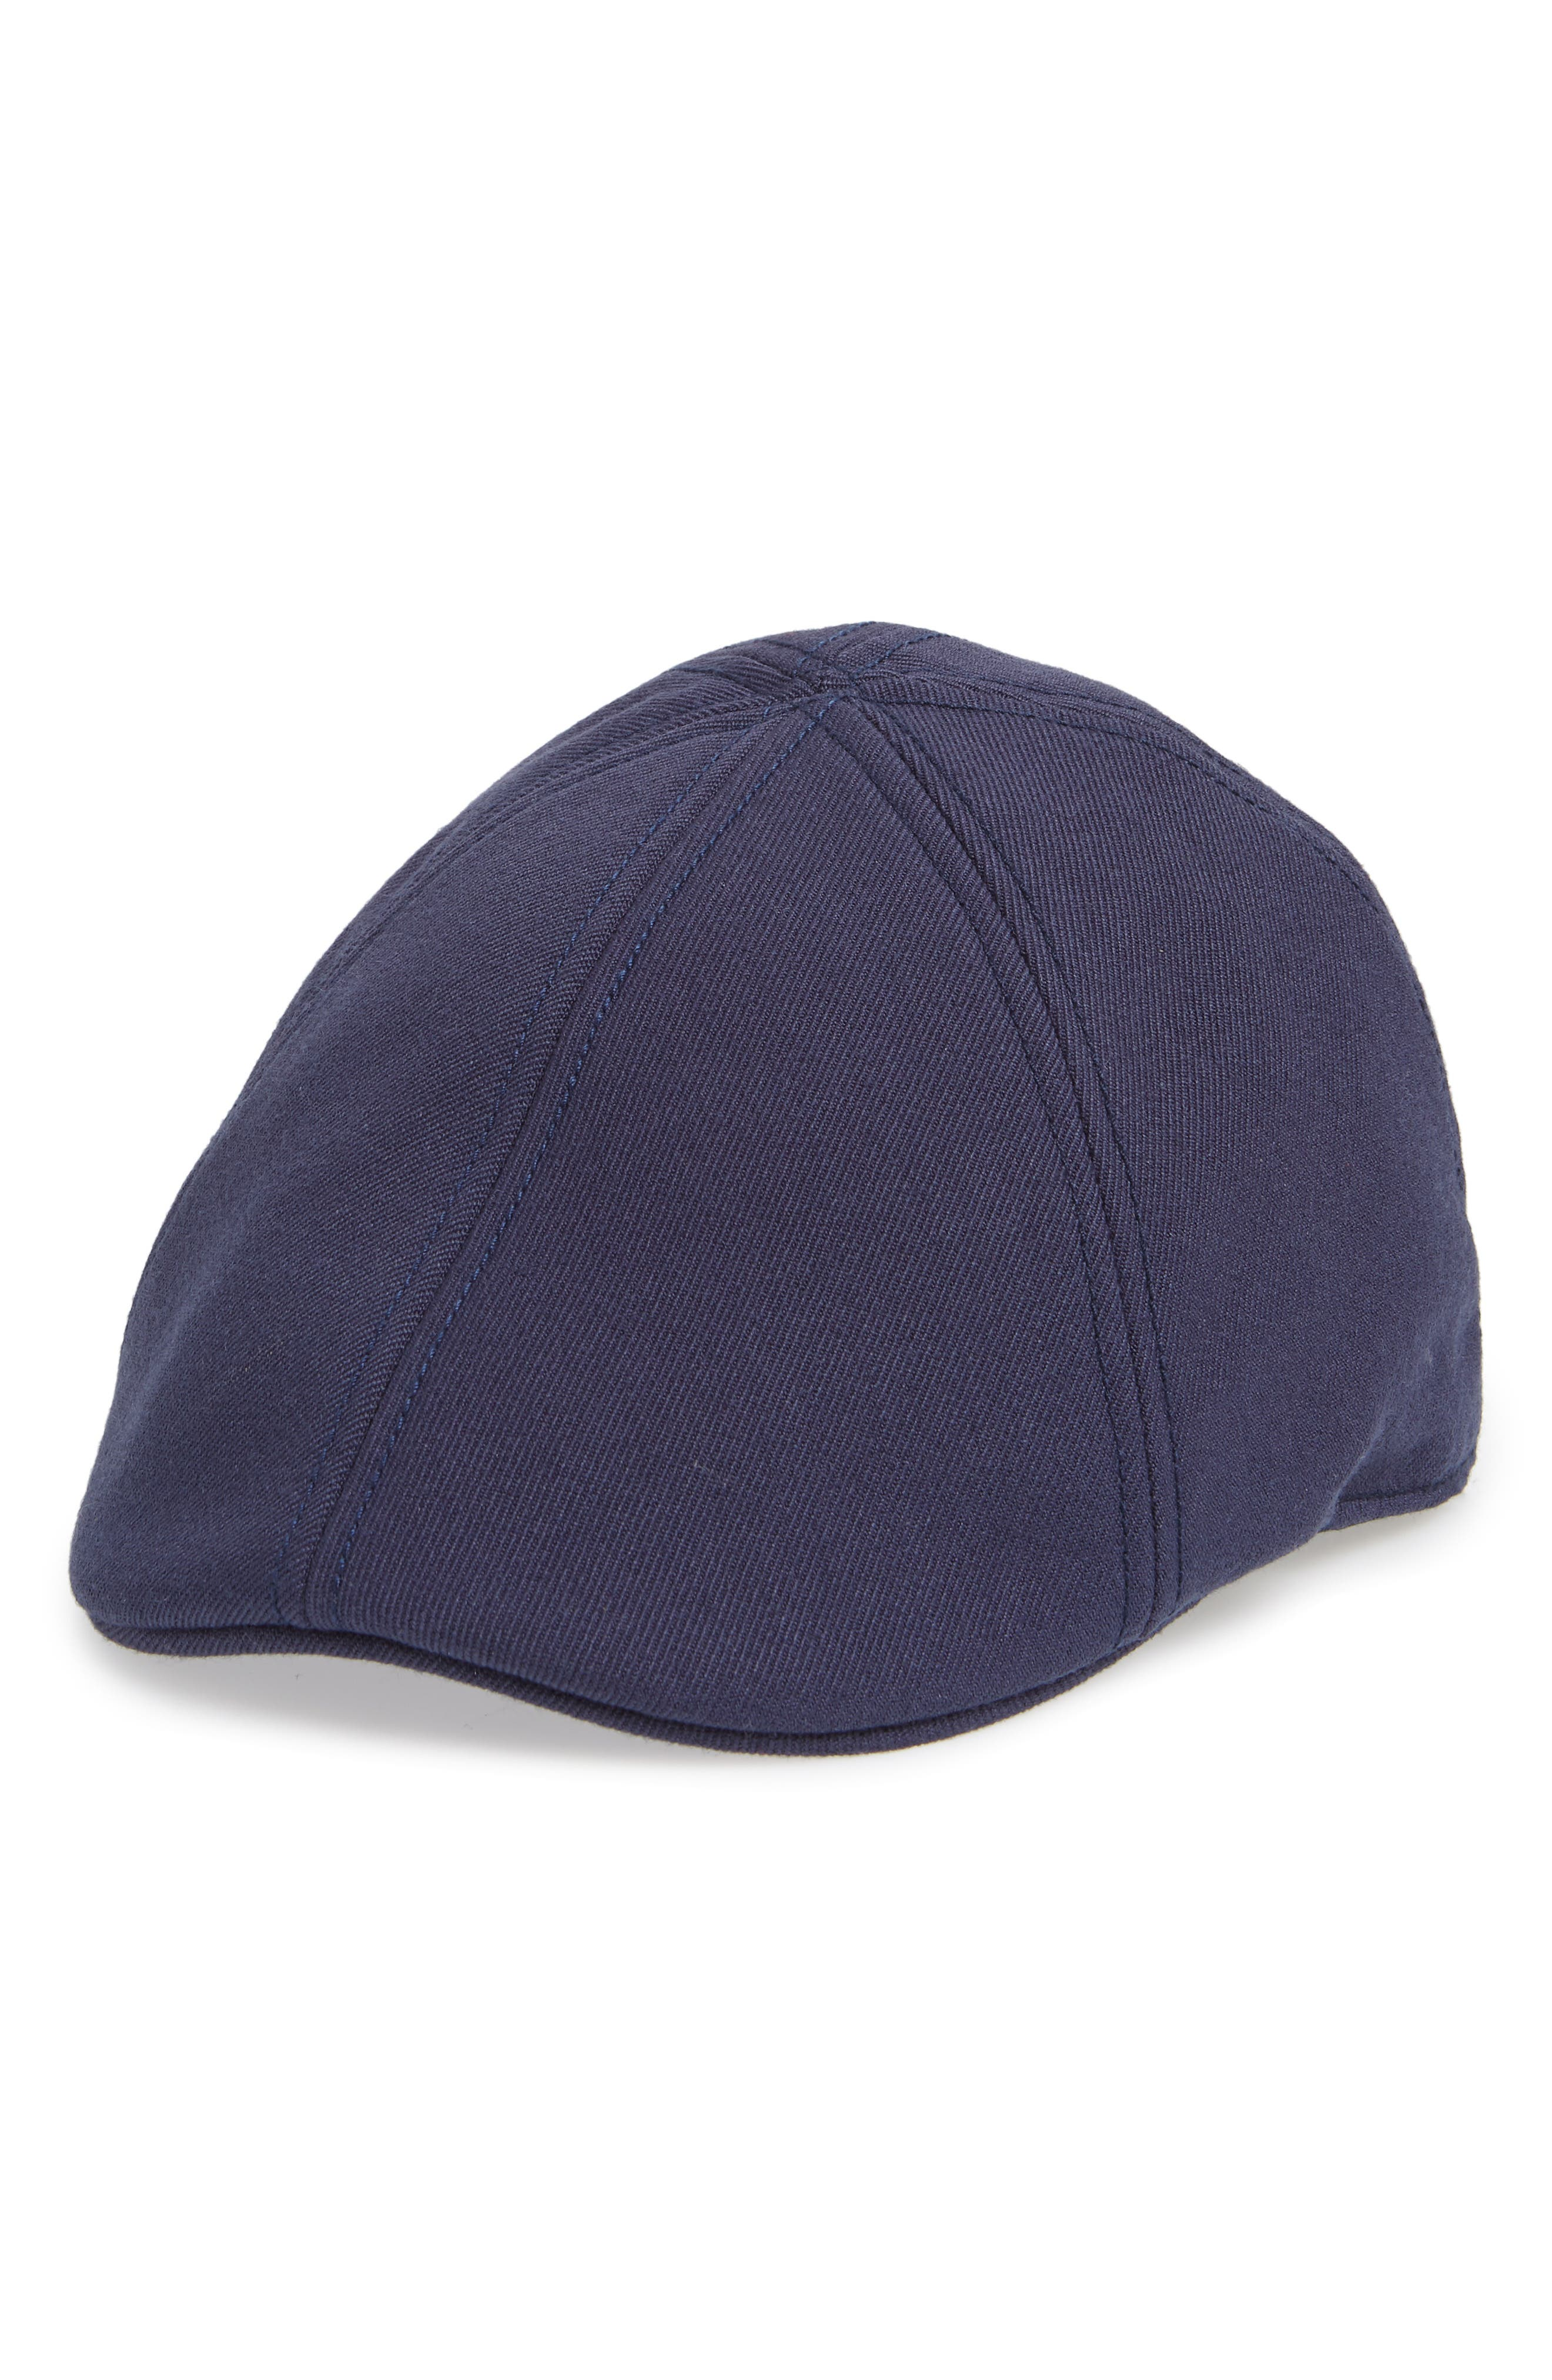 Old Town Driving Cap,                         Main,                         color, BLUE